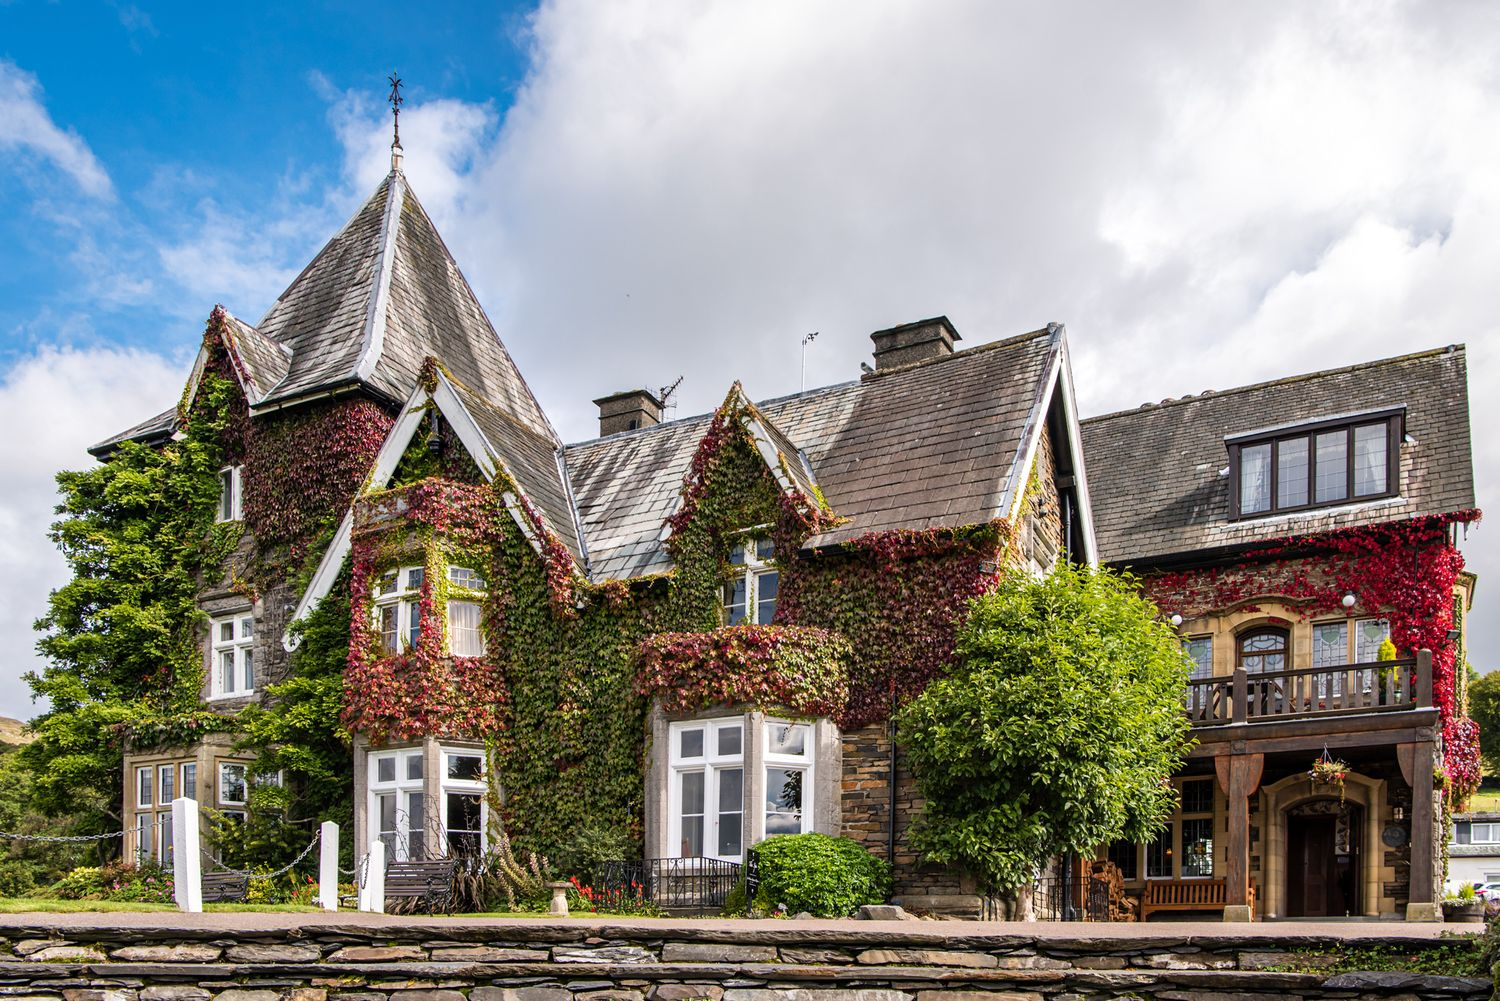 Holbeck Ghyll Hotel set on the hill overlooking Windermere in Cumbria